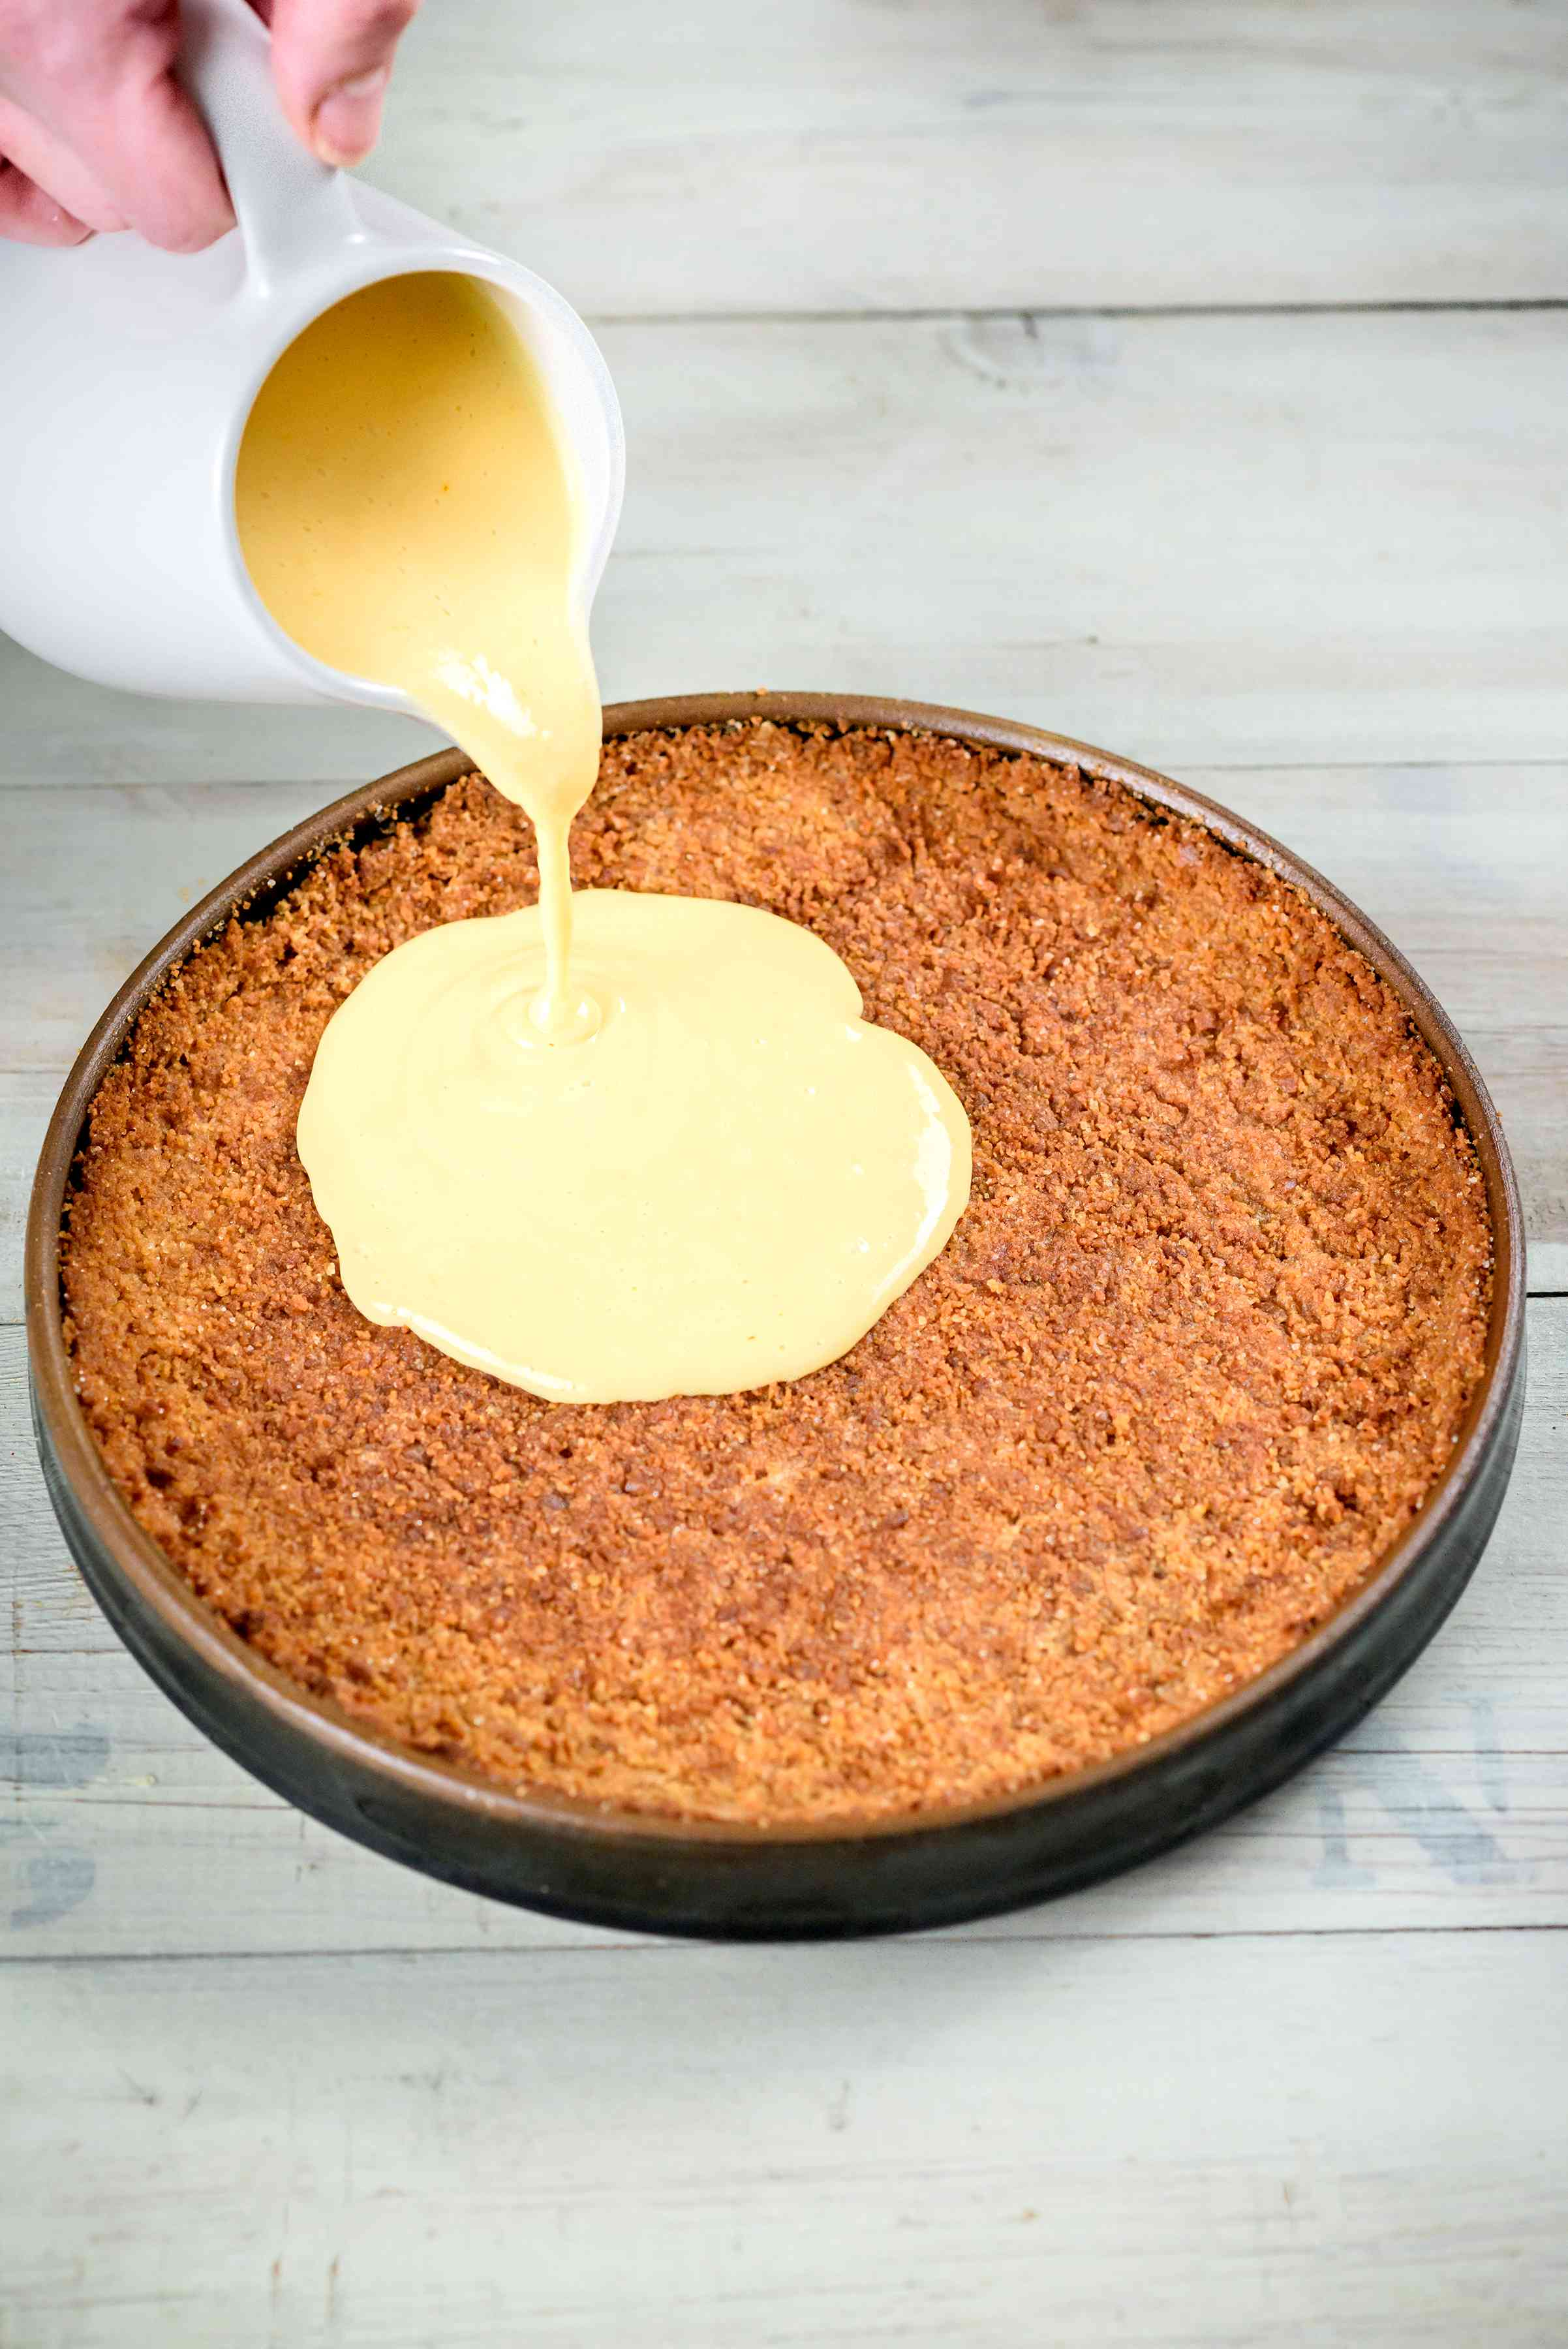 Pouring tart within crust